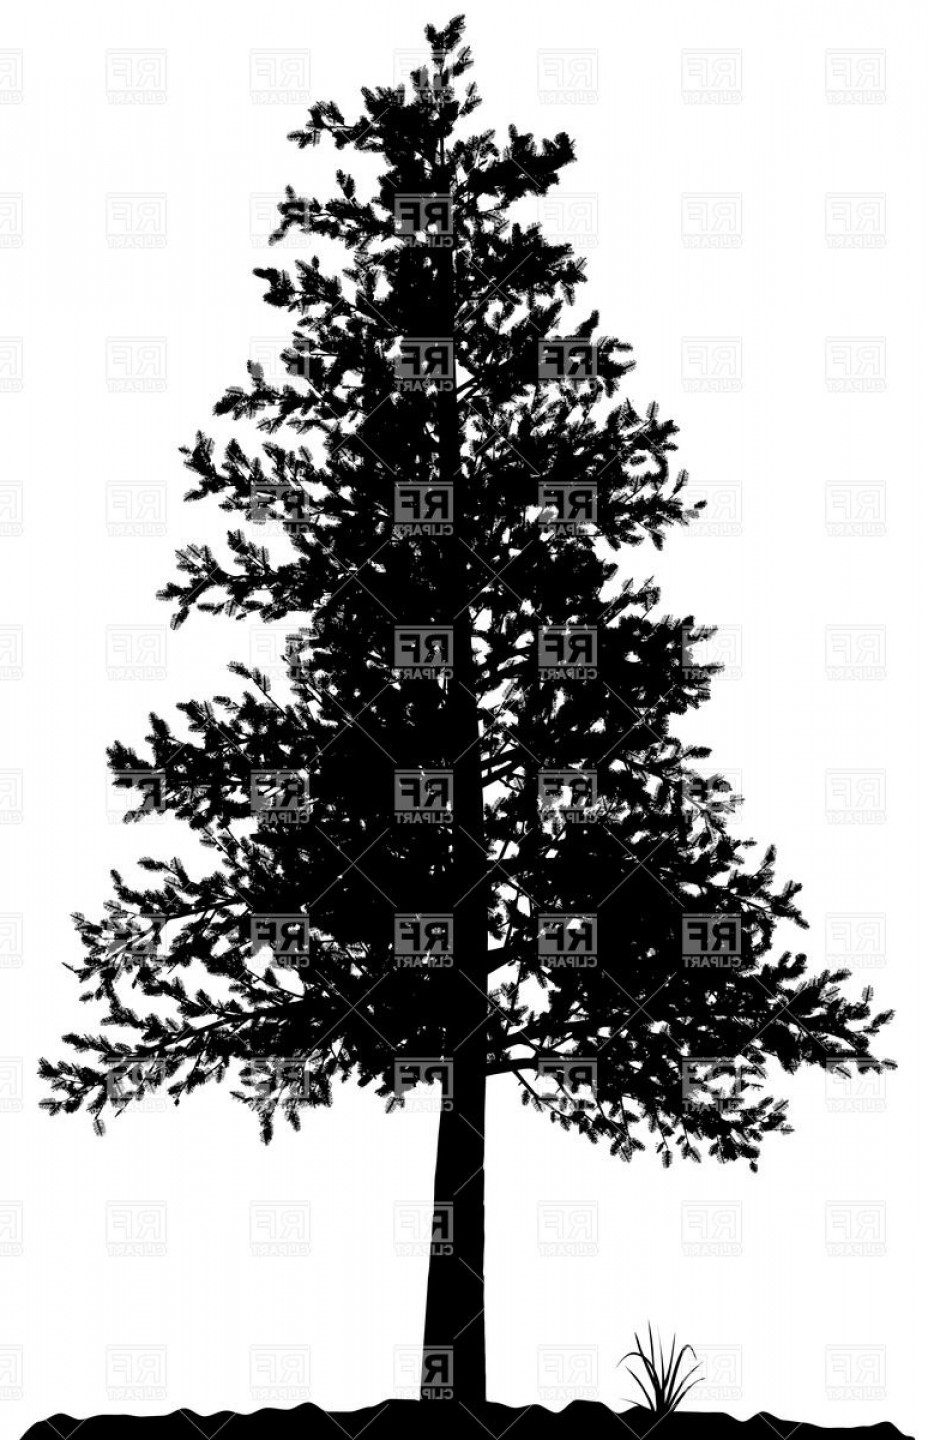 Tree Silhouette Vector Clip Art: High Detailed Pine Tree Silhouette On White Background Vector Clipart